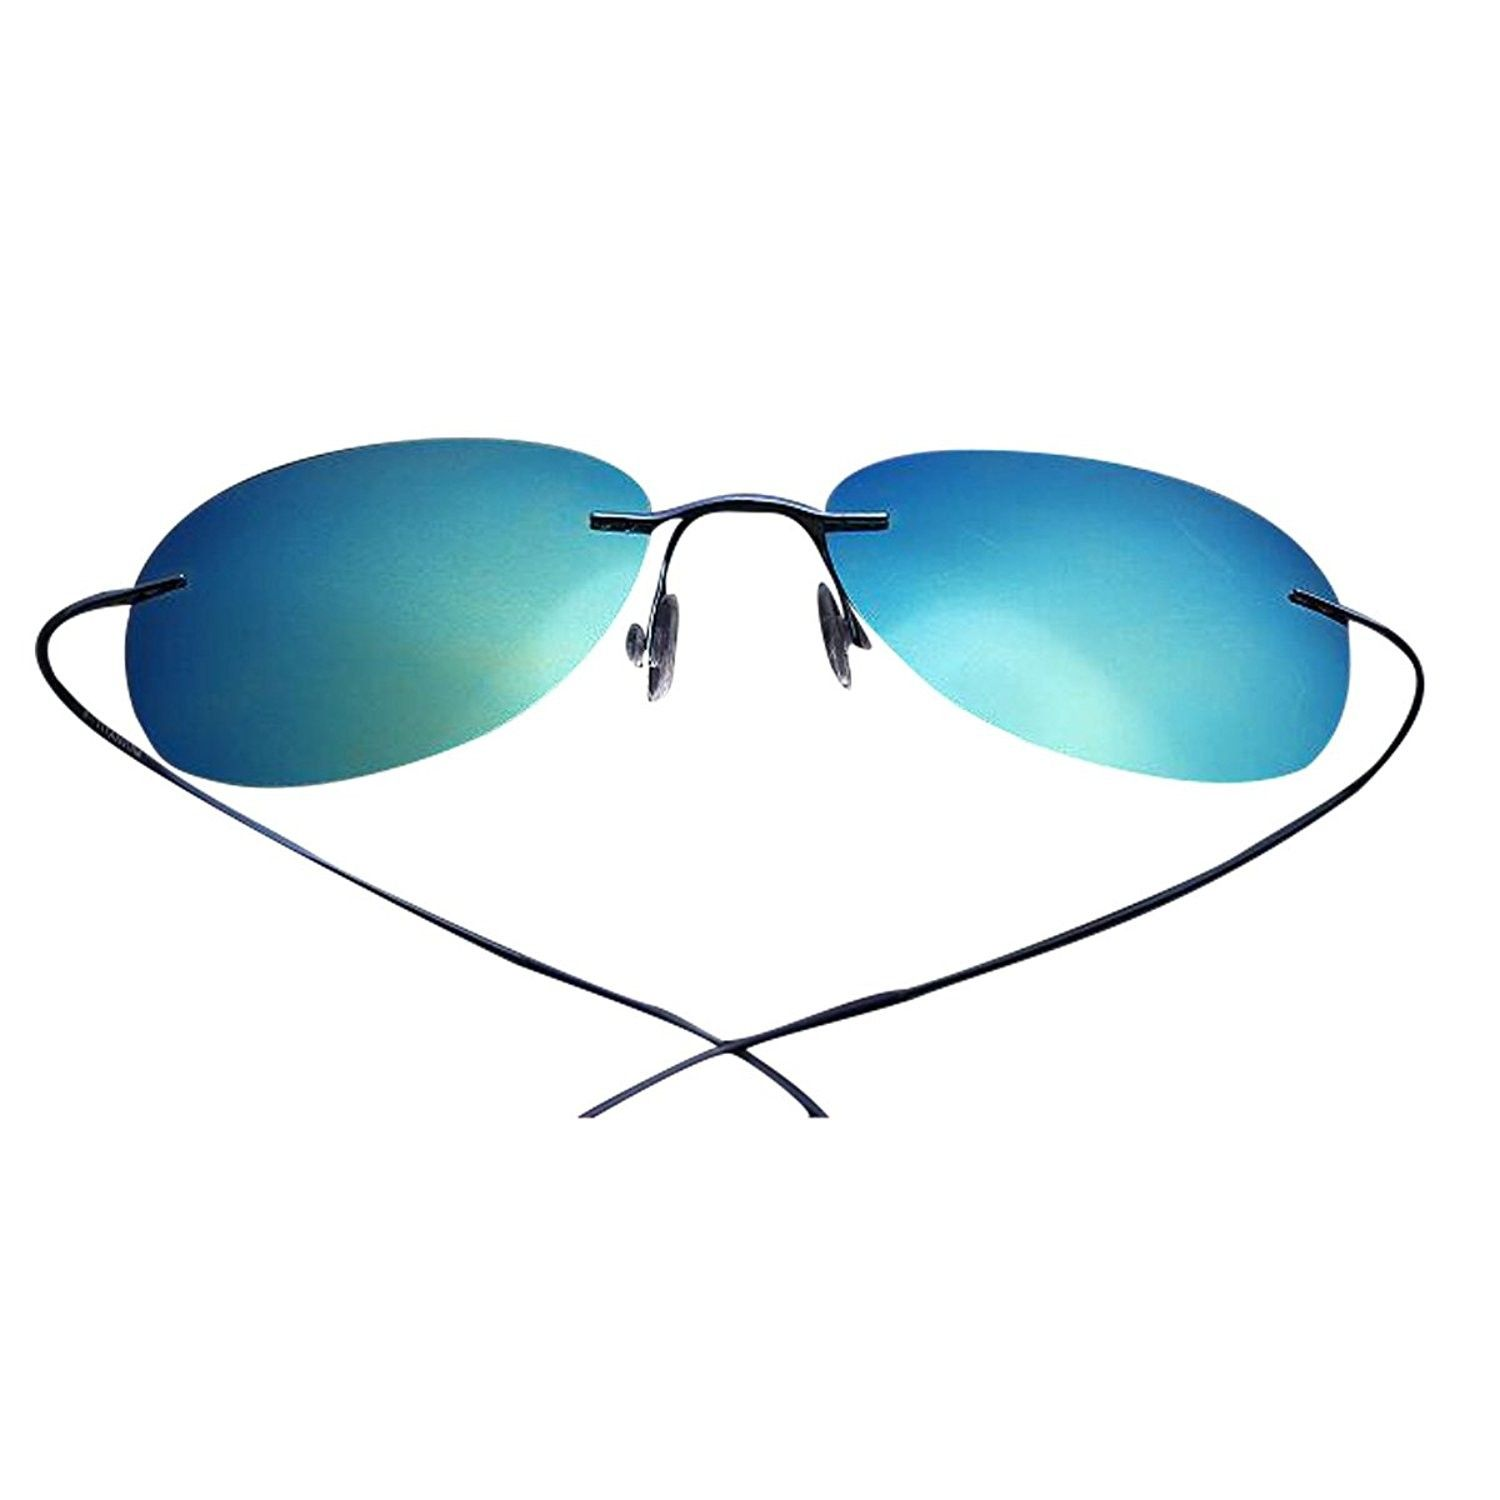 f11fb3127c7 Rimless Titanium UV400 Premium Polarized Sweatproof Anti-Static Sunglasses  - Blue Frame Blue Lens -